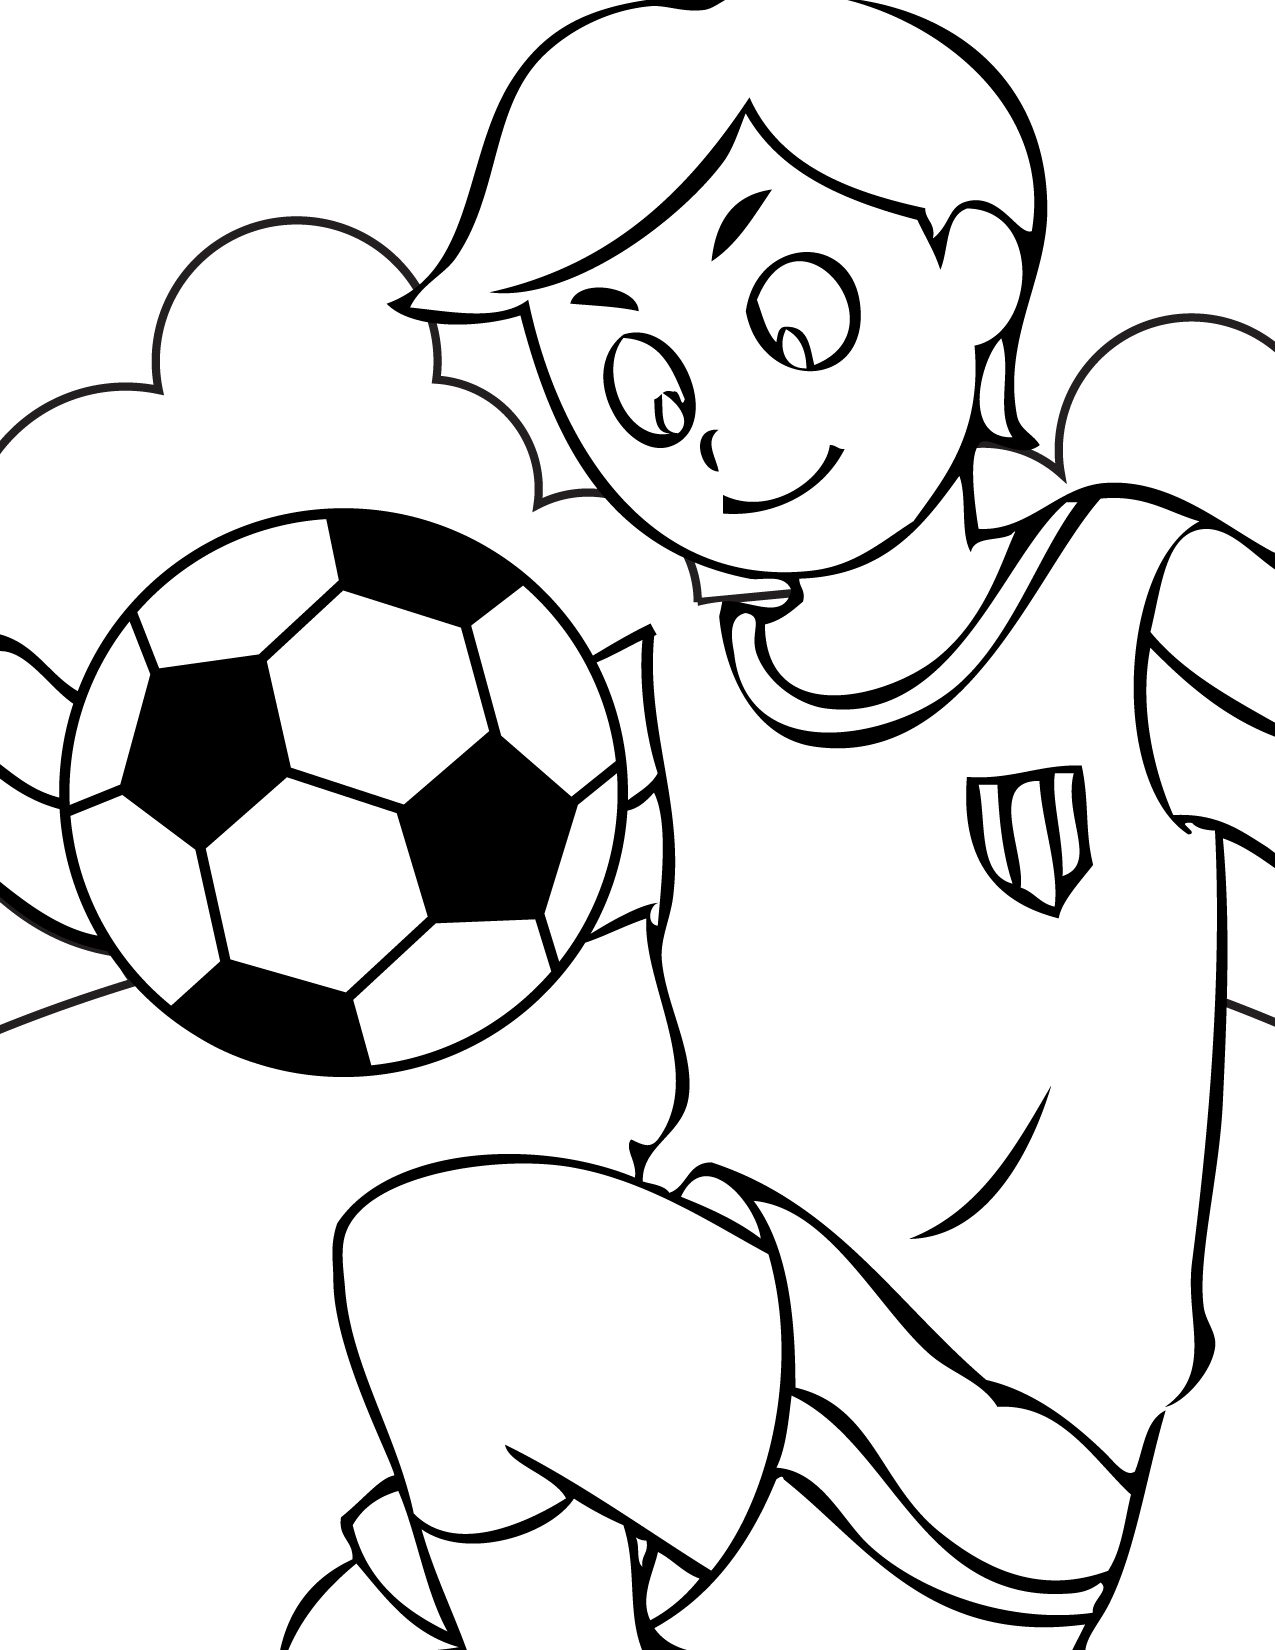 1275x1650 Clever Design Soccer Coloring Pages Free